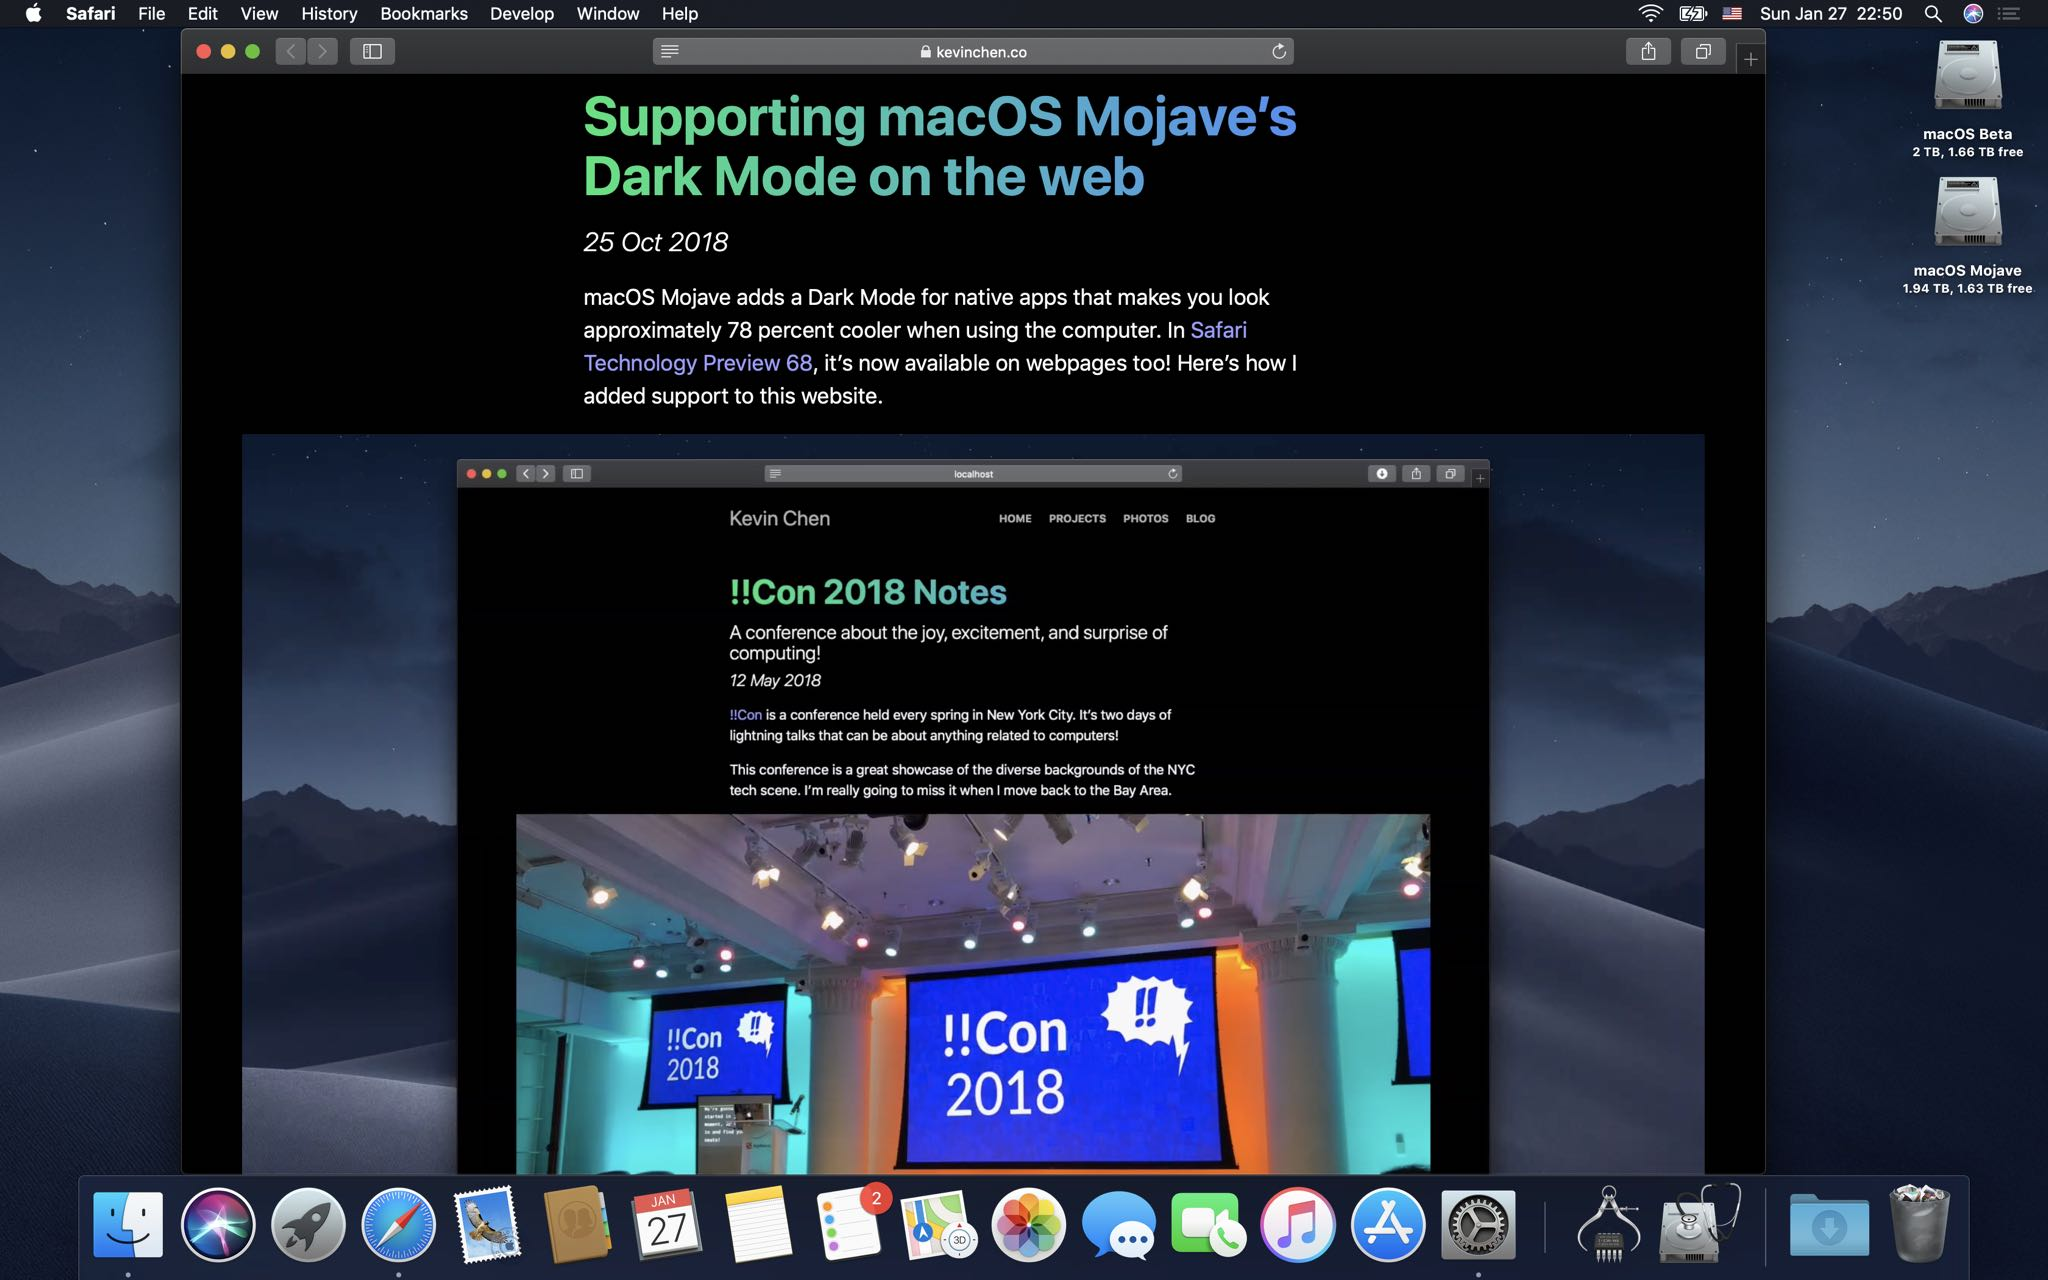 macOS Mojave 10 14 4 enables automatic Dark Mode on websites